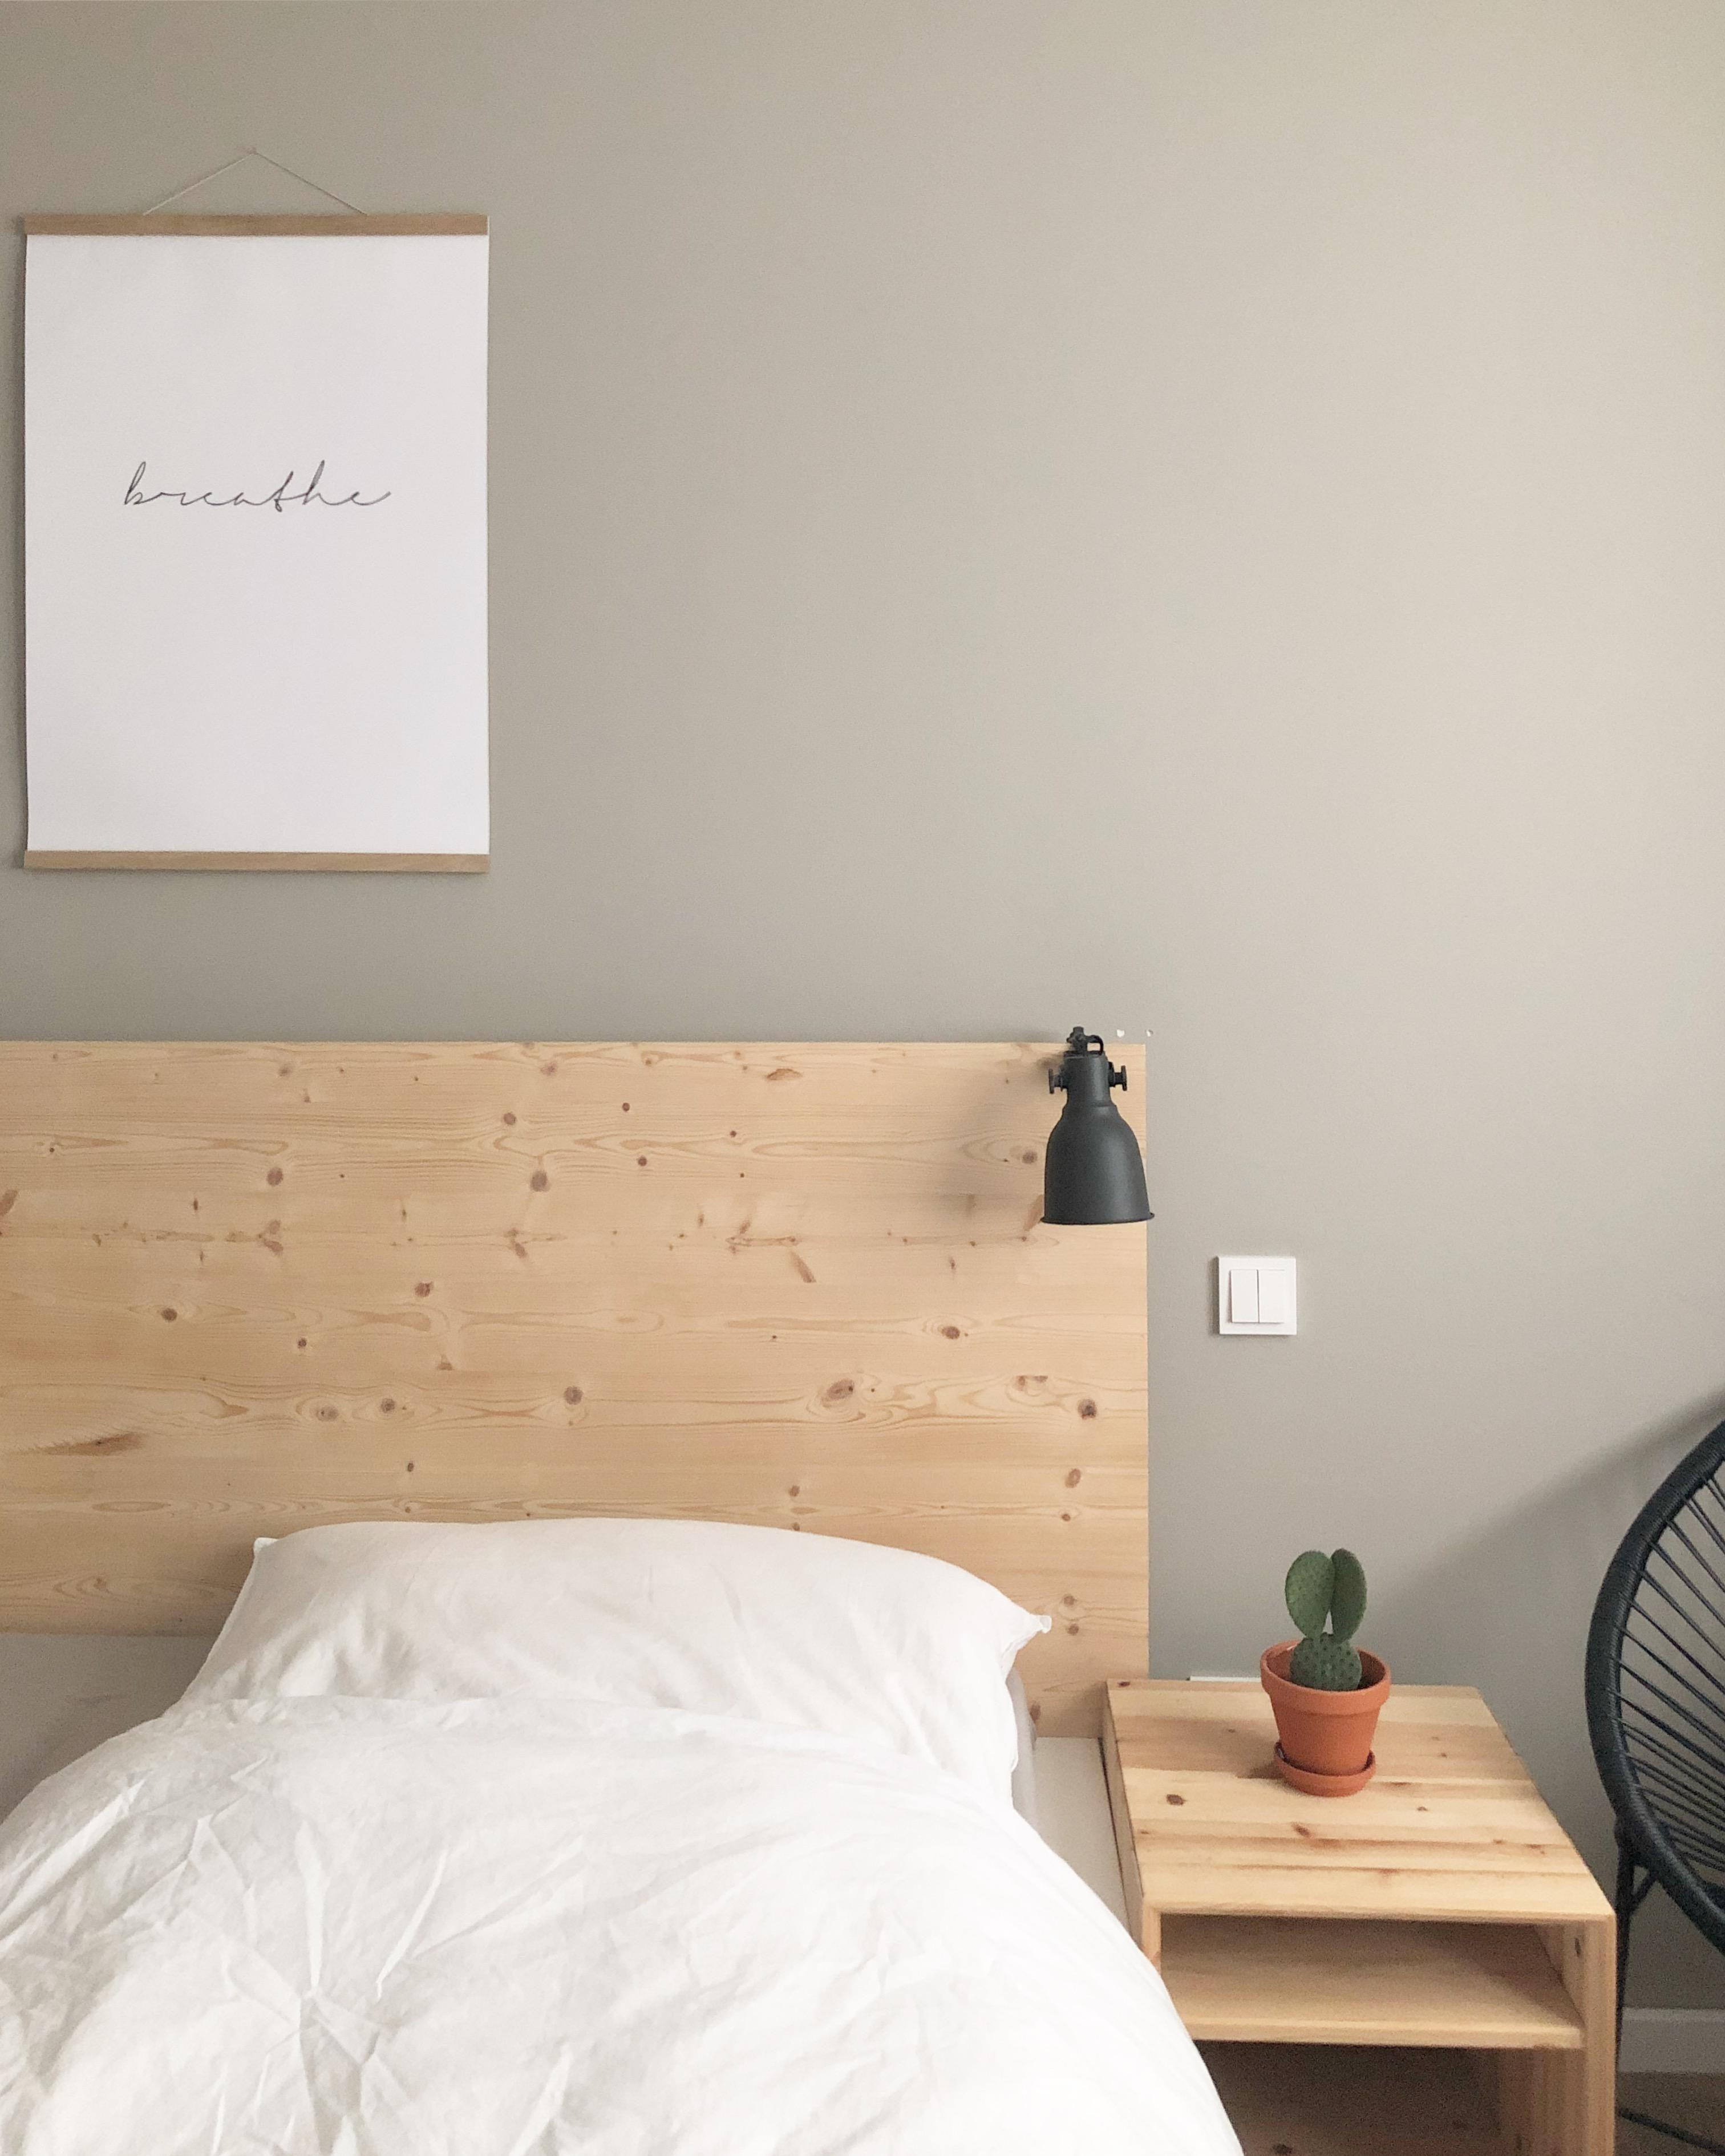 Bettliebe Bett Malmbett Ikeahack Ikea Diy Th